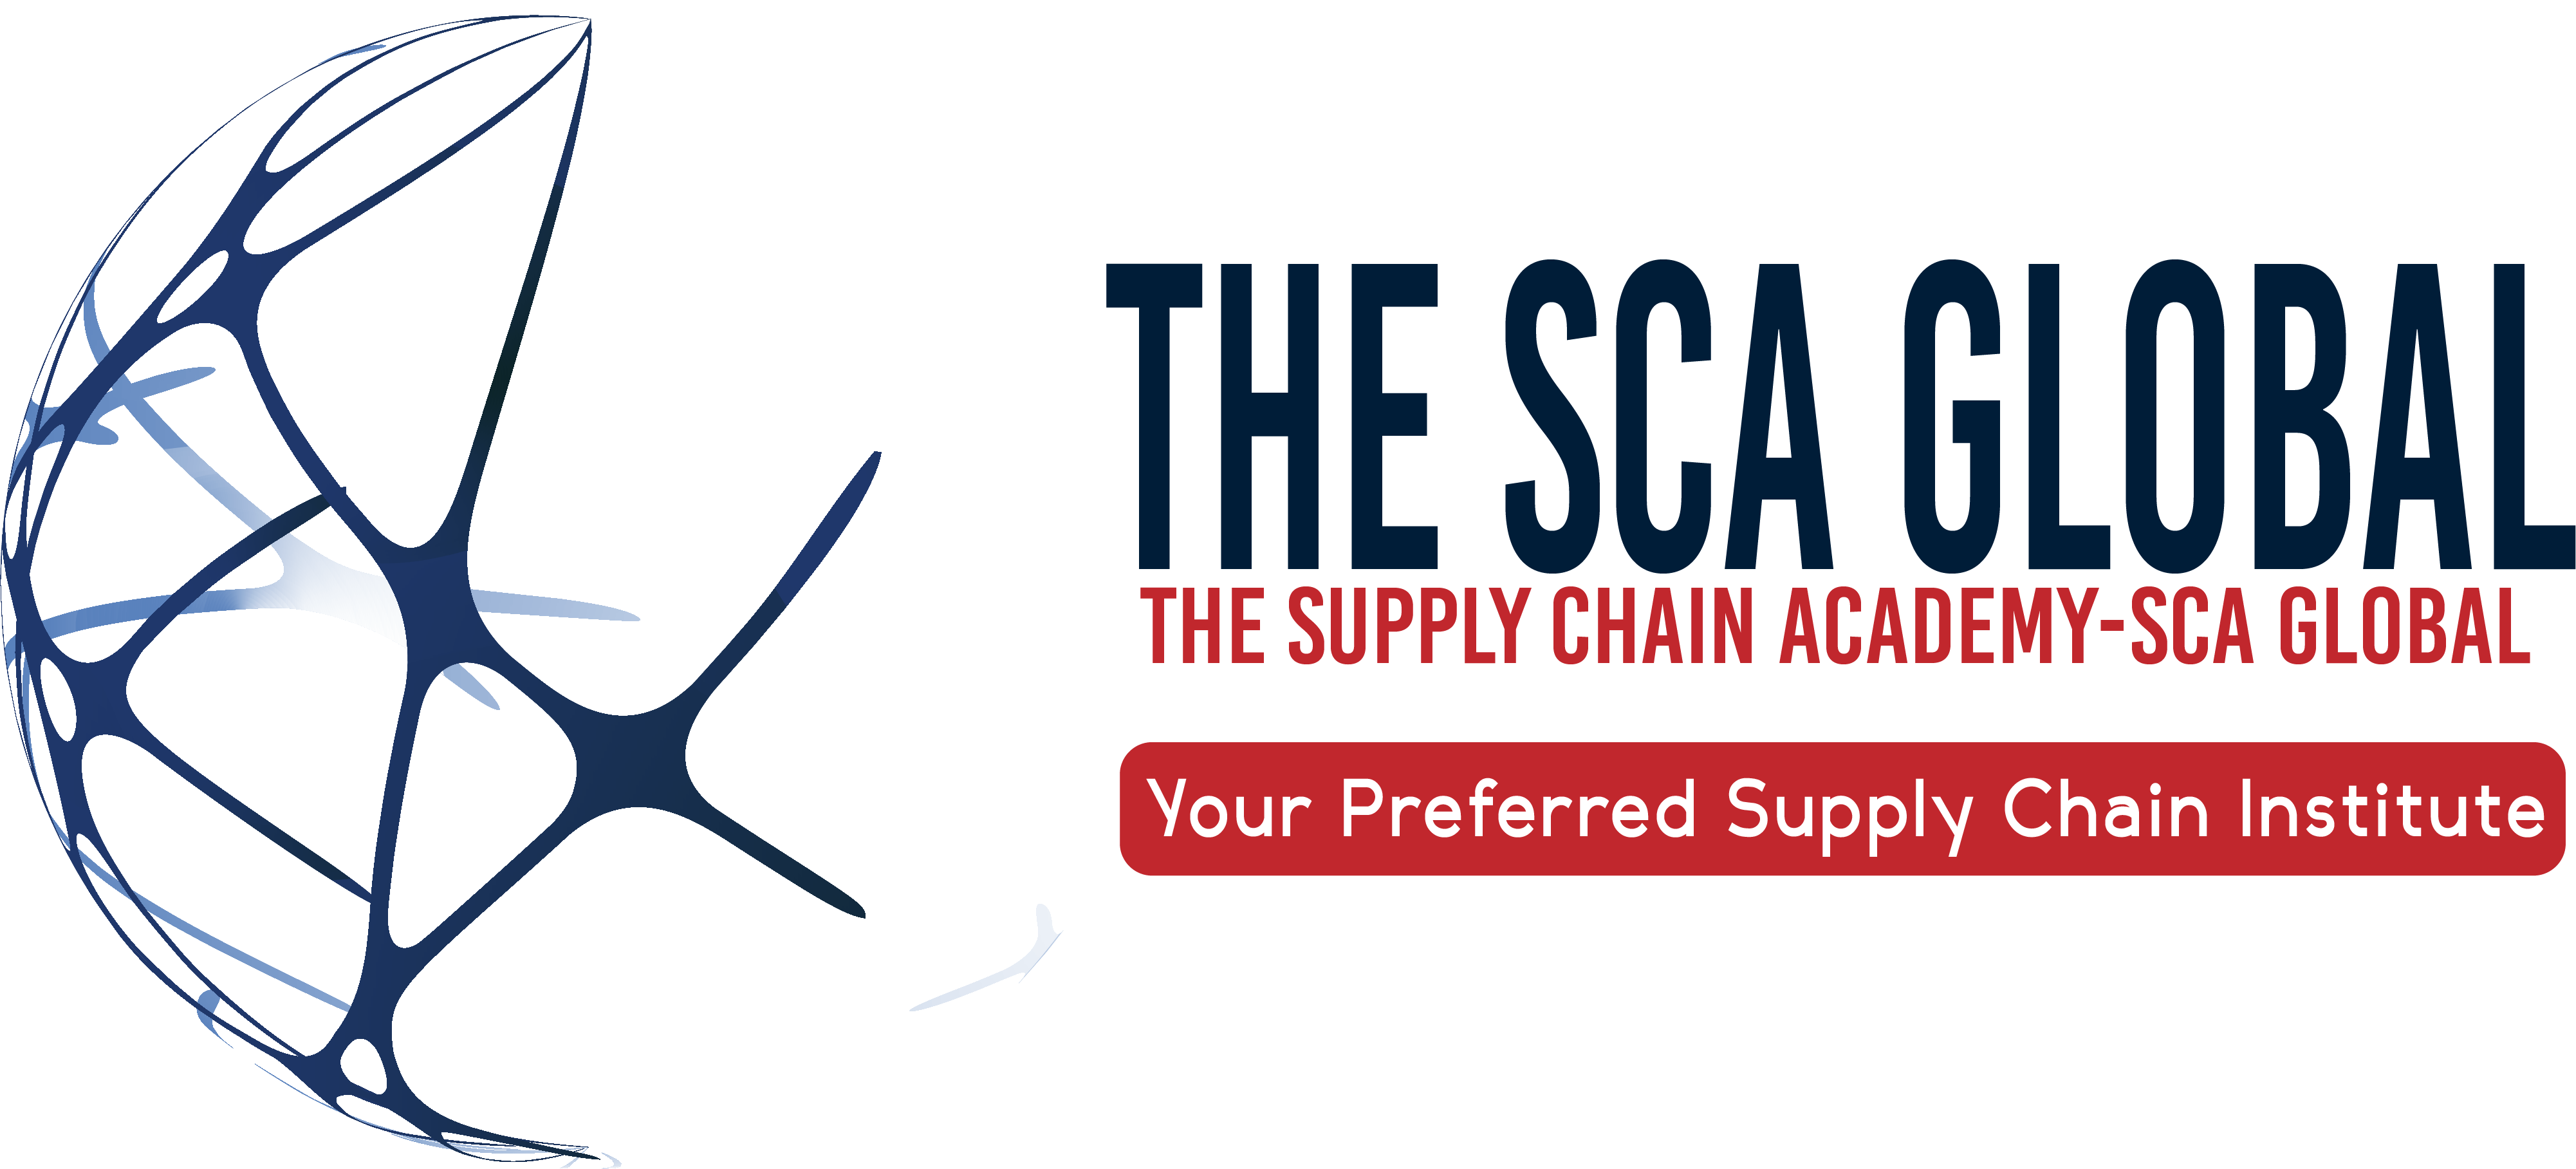 The Supply Chain Academy -SCA Global